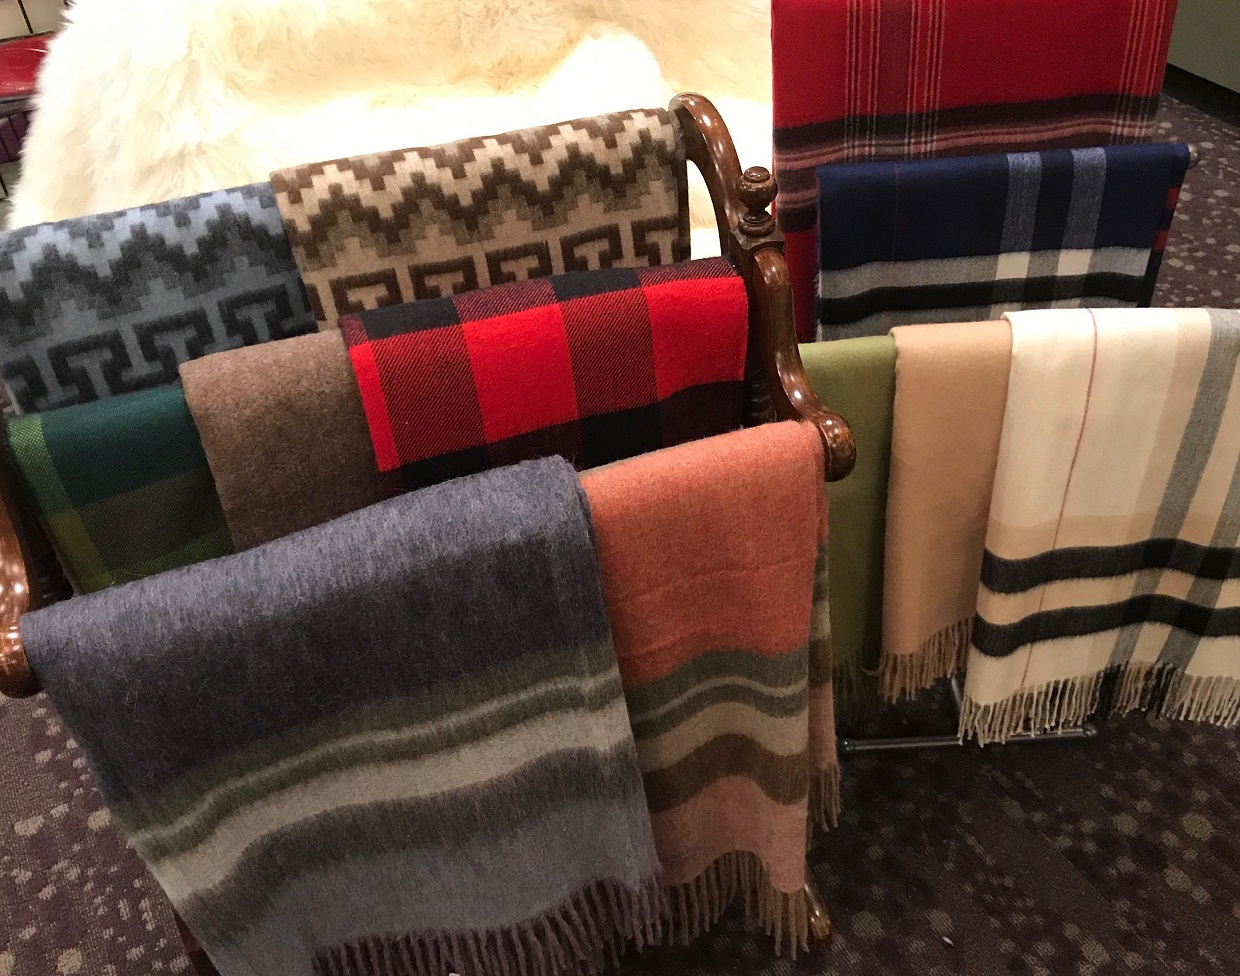 JUST IN: THE MOST COMFORTABLE THROWS ON EARTH from Sheepskin & Alpaca Specialties